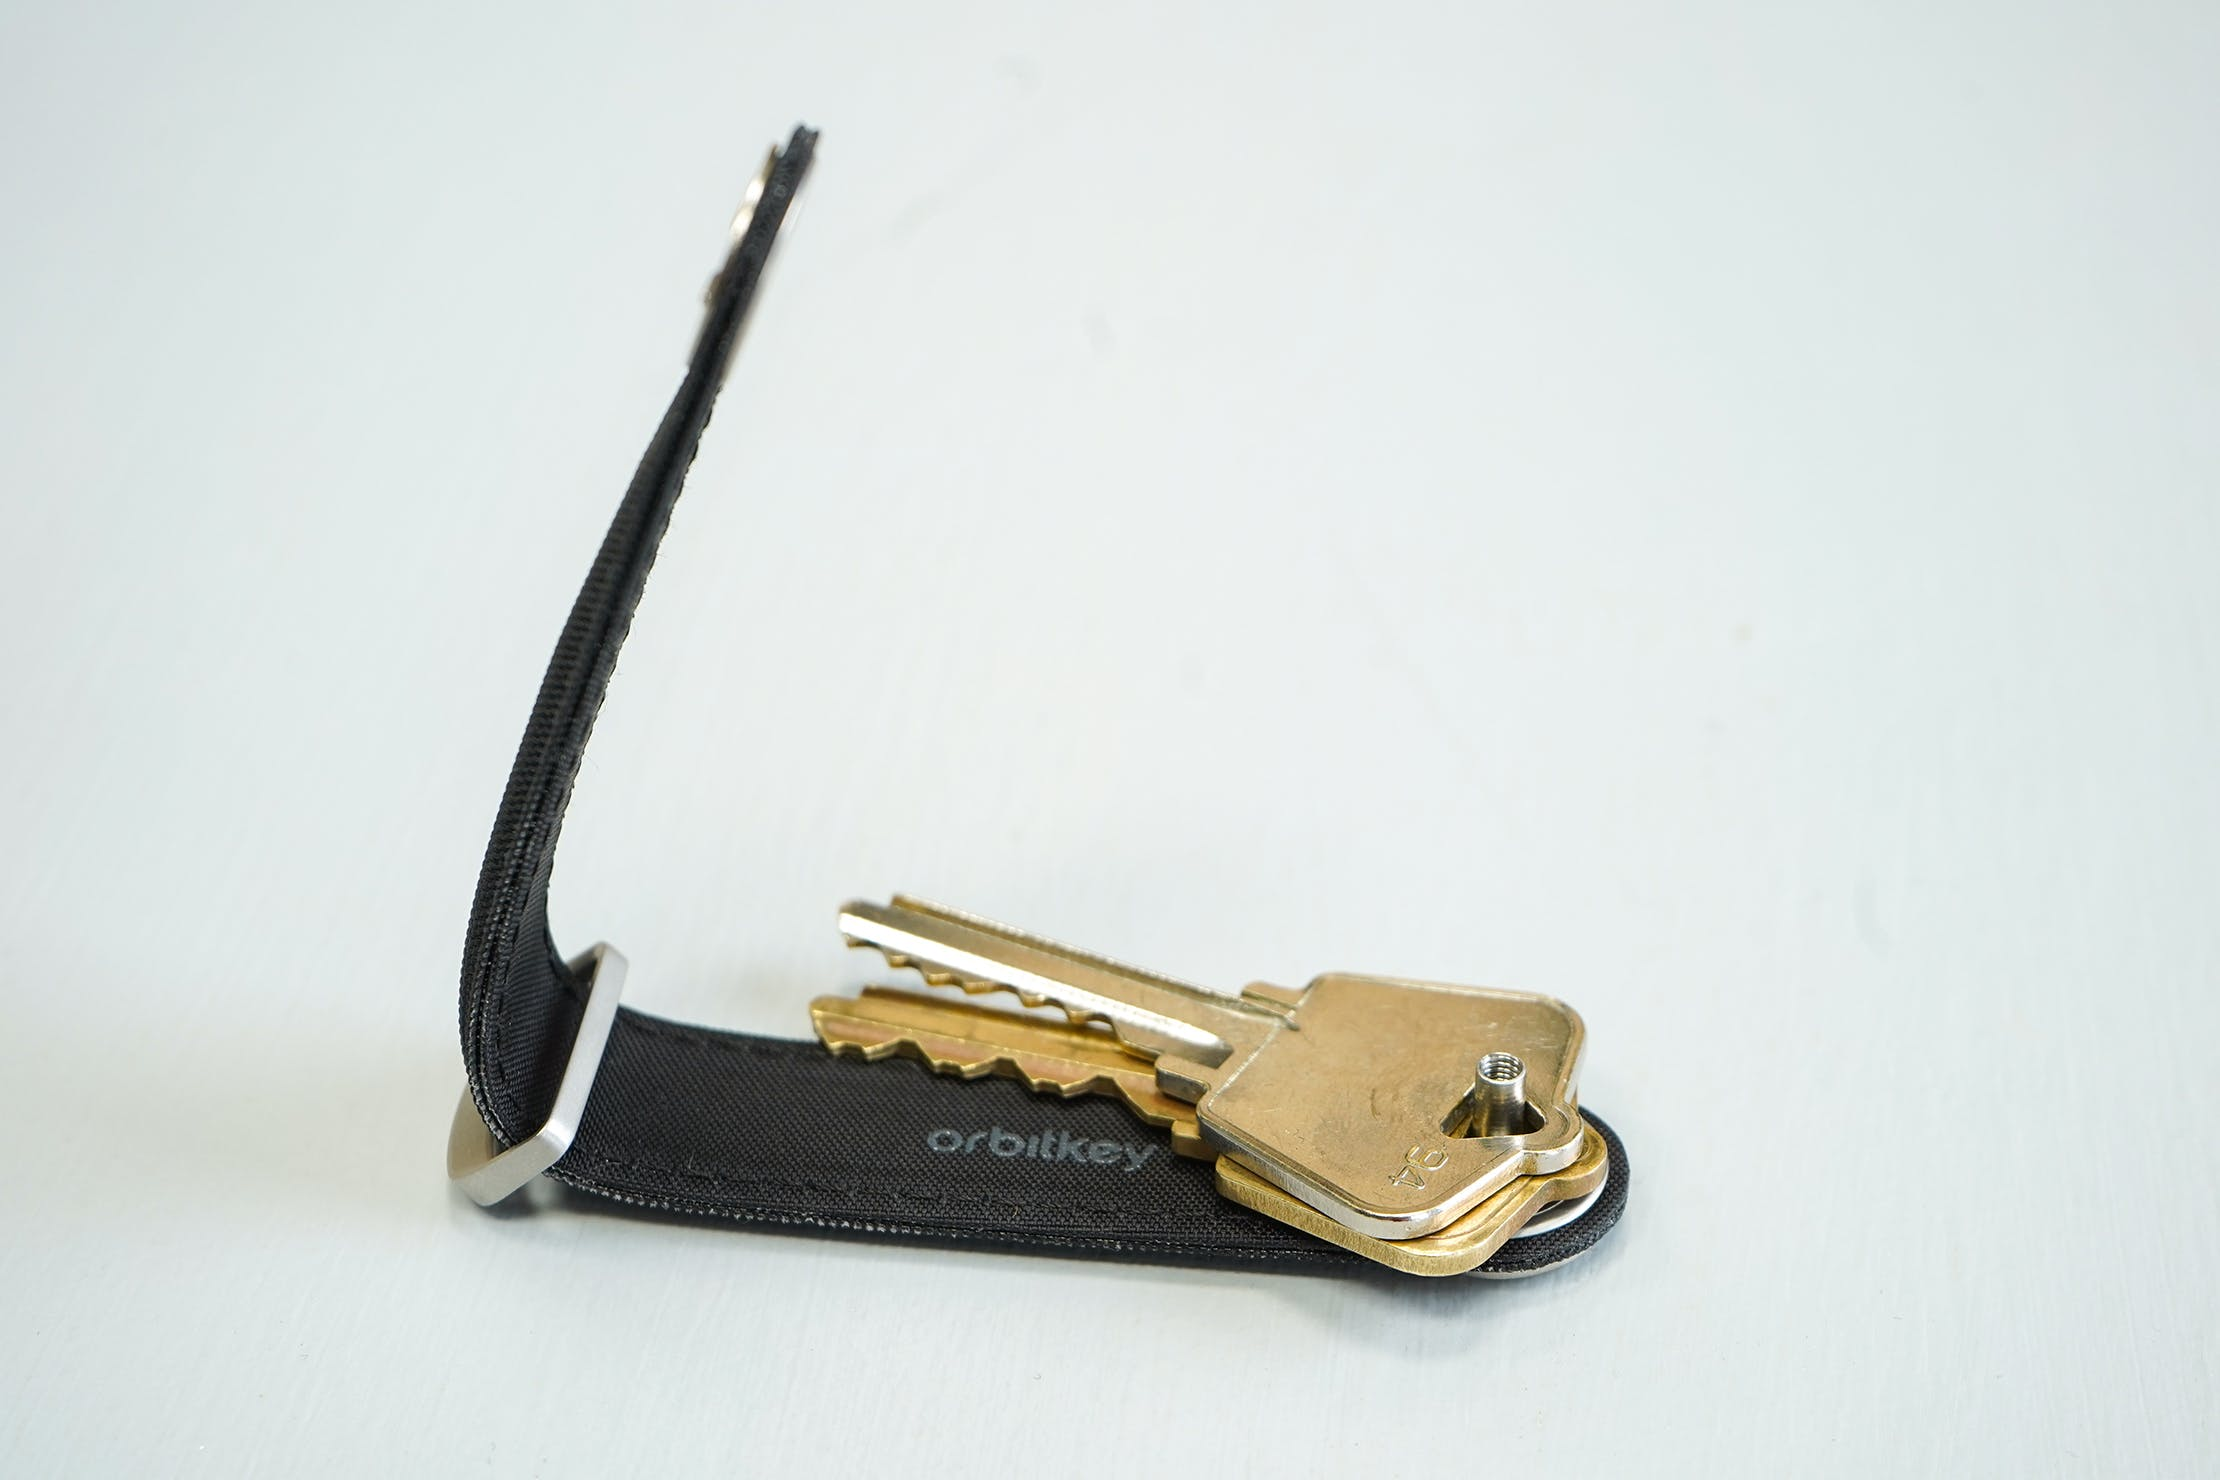 Adding Keys To The Orbitkey Organiser